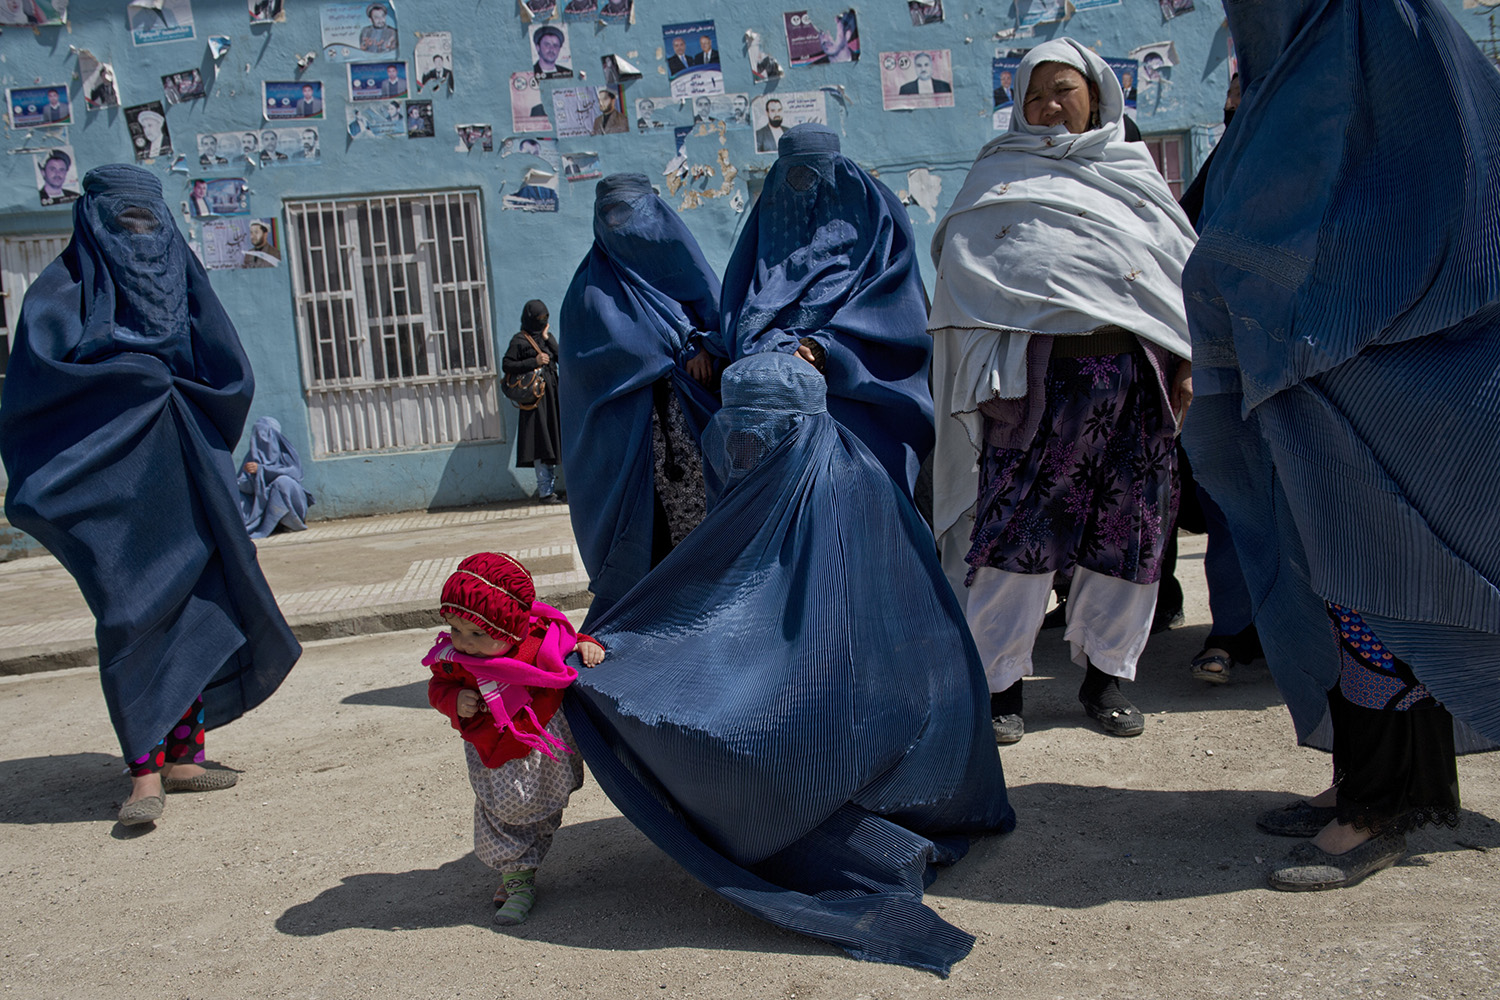 Afghan women leave a rally for Presidential candidate Zalmai Rassoul and Vice Presidential candidate Habiba Sarabi in Mazar-i-Sharif, Afghanistan, March 27, 2014.